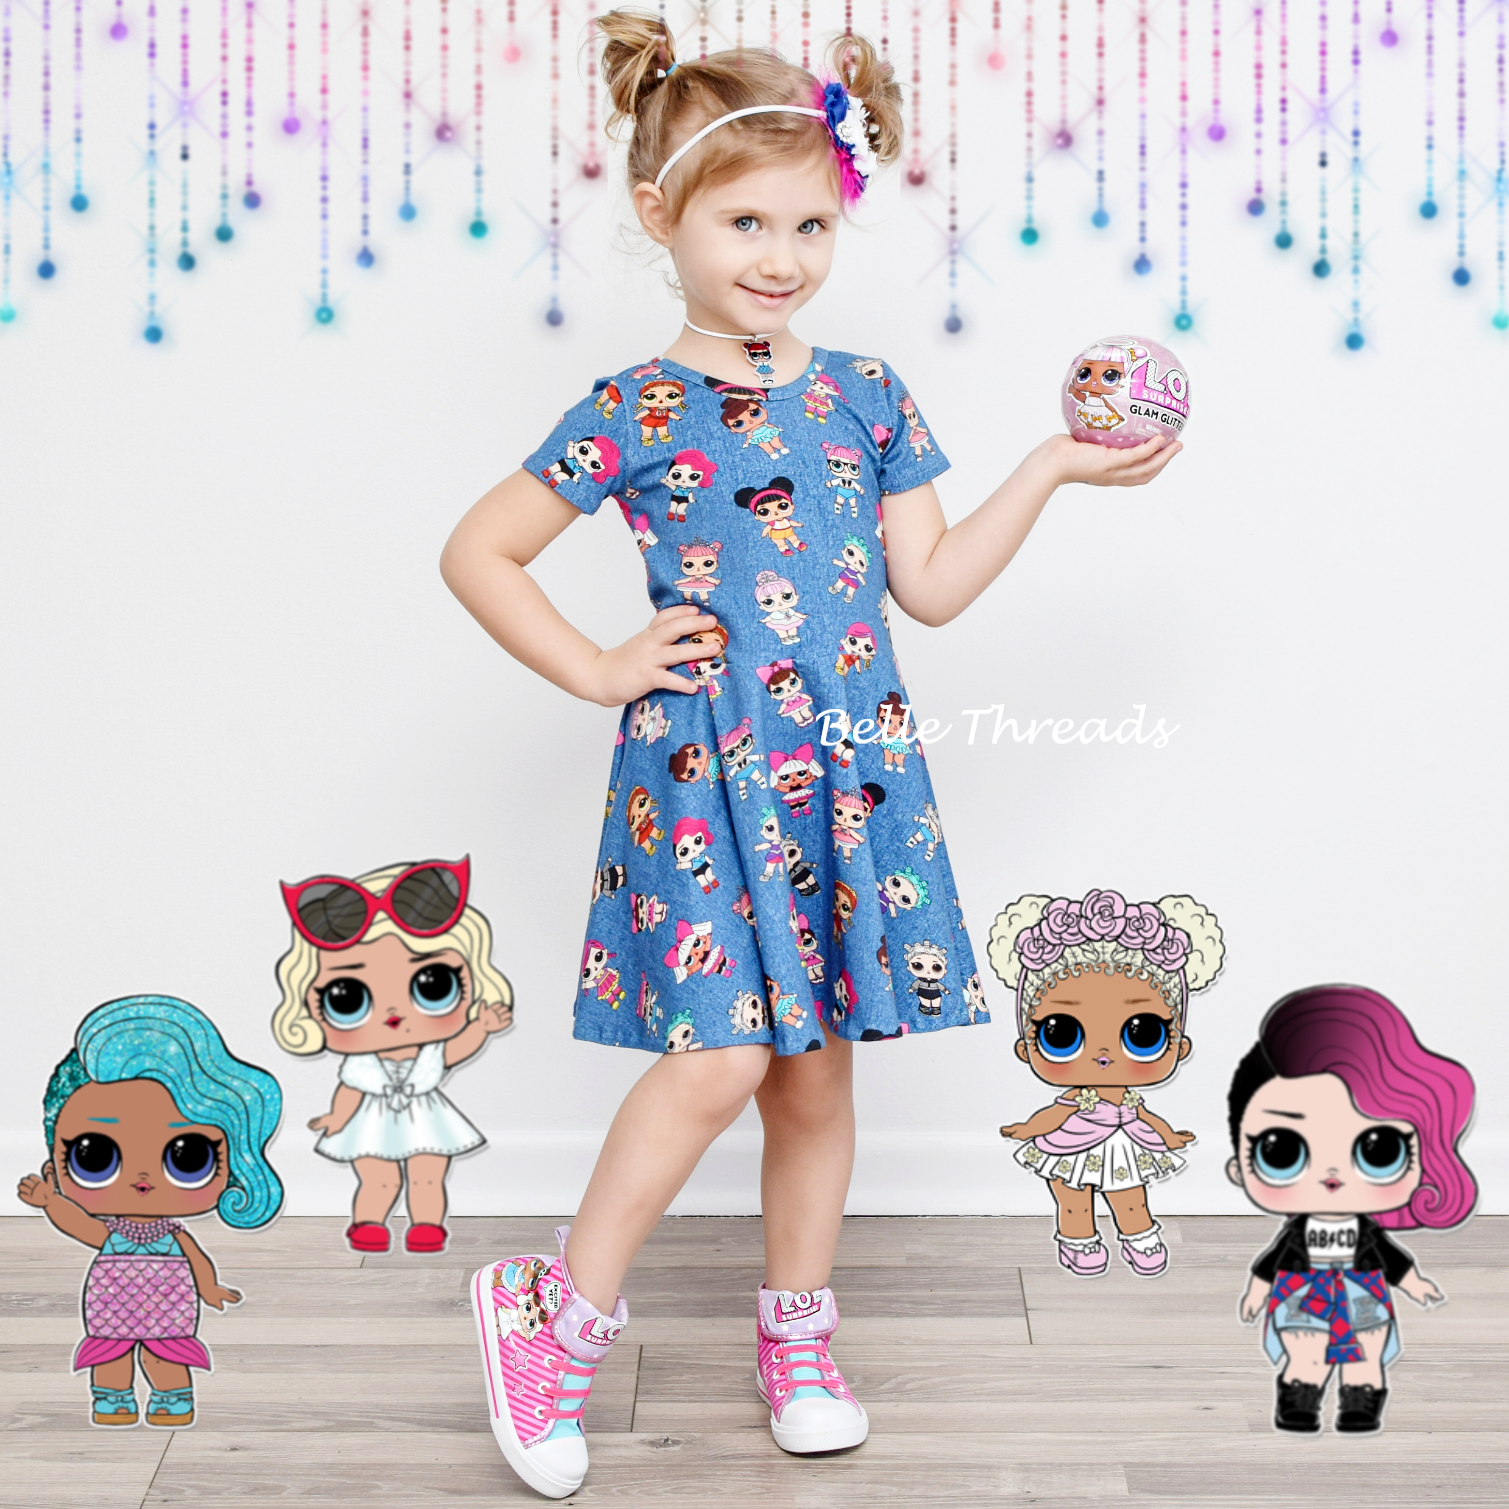 LOL Dolls Twirl Dress made by Belle Threads  LIMITED